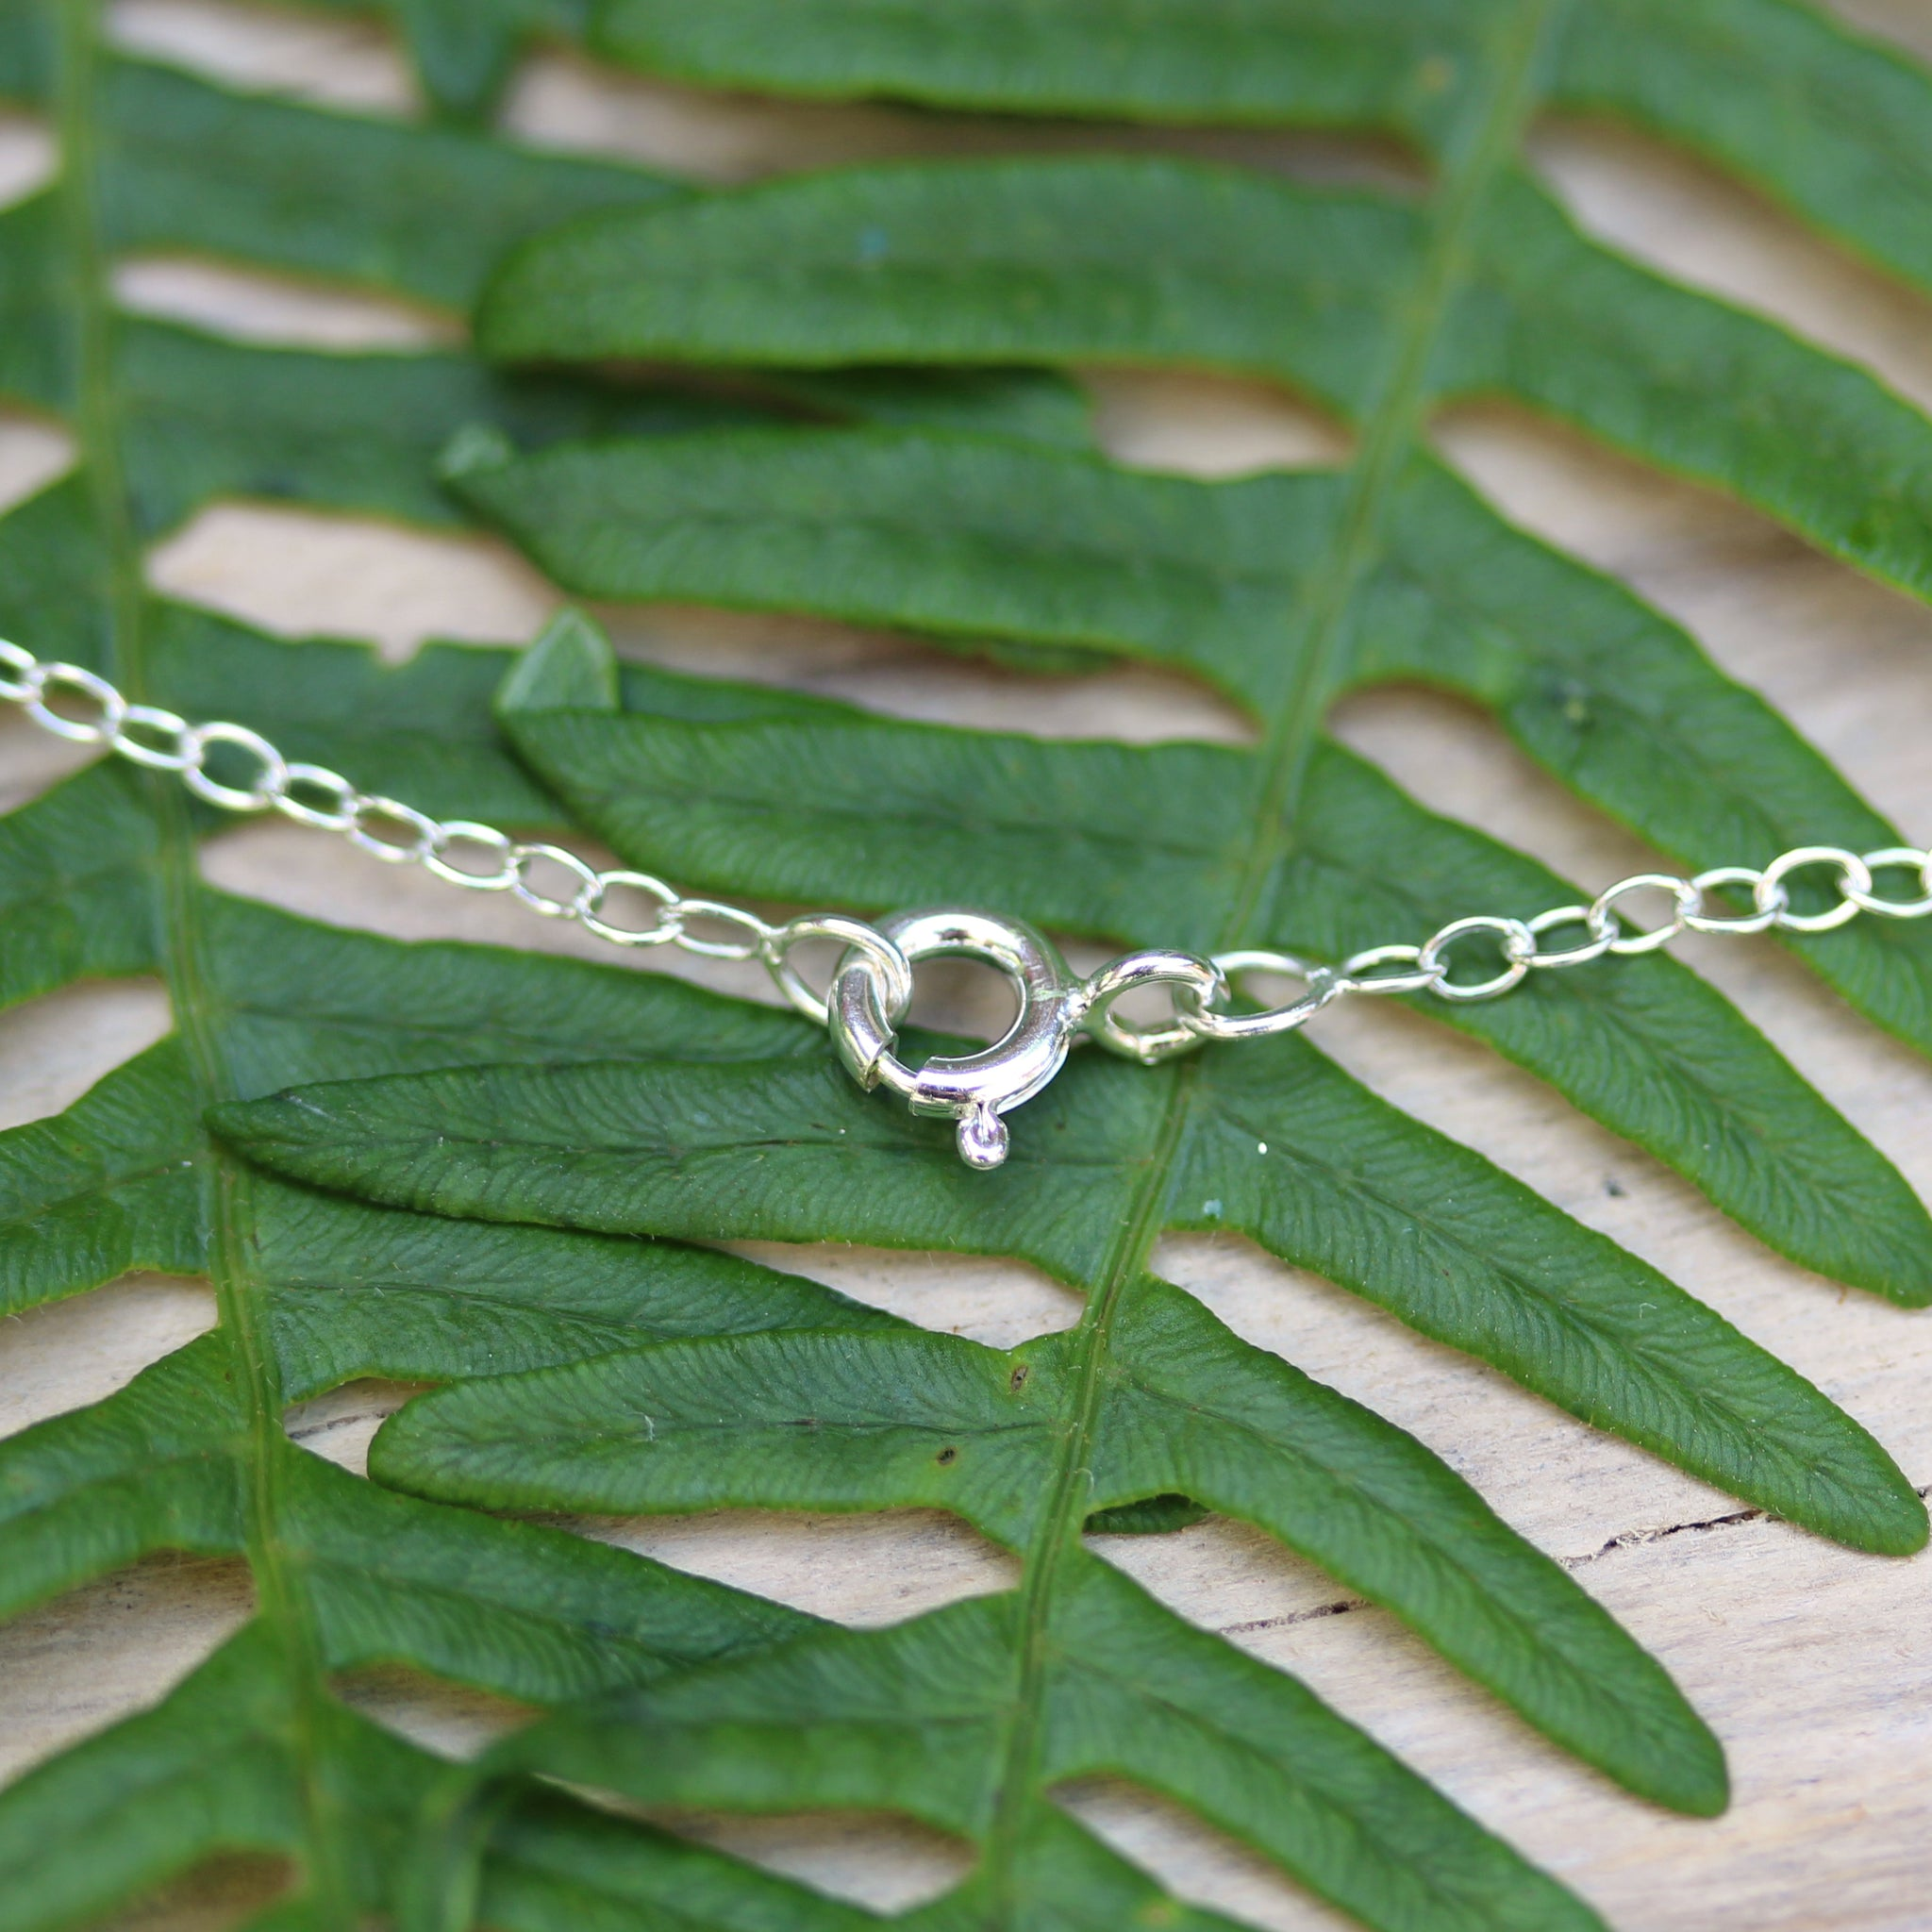 Solid silver bolt ring on the Single Plumeria flower necklace, handmade in 100% recycled sterling silver, by Gemma Tremayne Jewellery